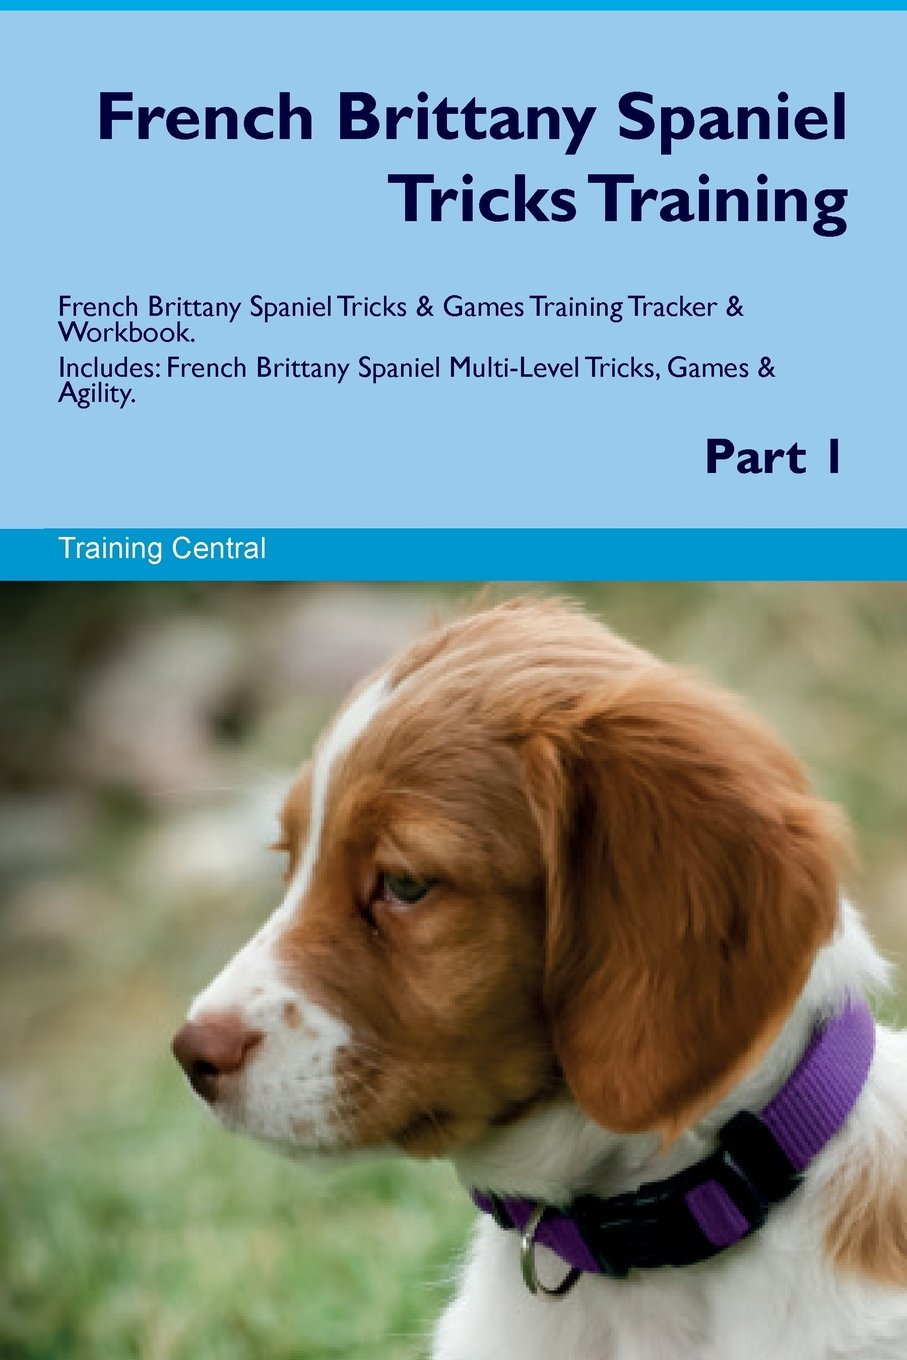 Download French Brittany Spaniel Tricks Training French Brittany Spaniel Tricks & Games Training Tracker & Workbook. Includes: French Brittany Spaniel Multi-Level Tricks, Games & Agility. Part 1 ebook